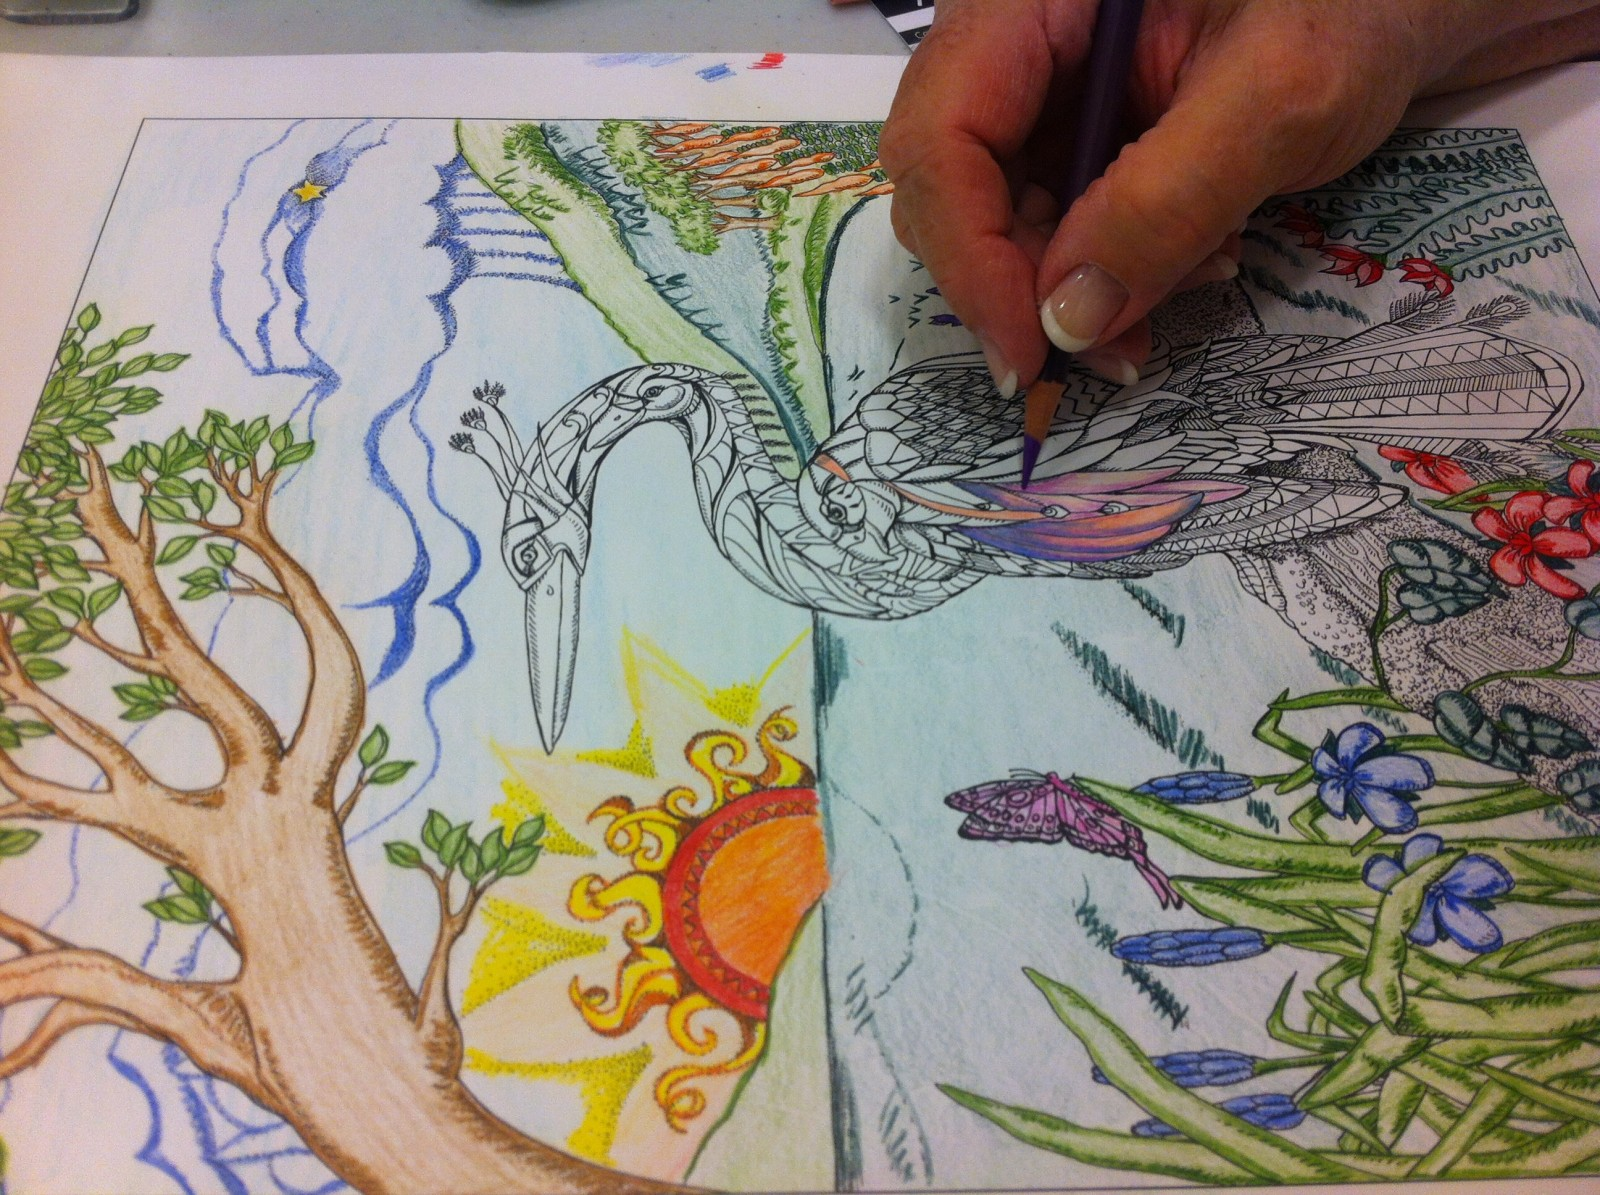 Colouring a familiar, but new way to relax